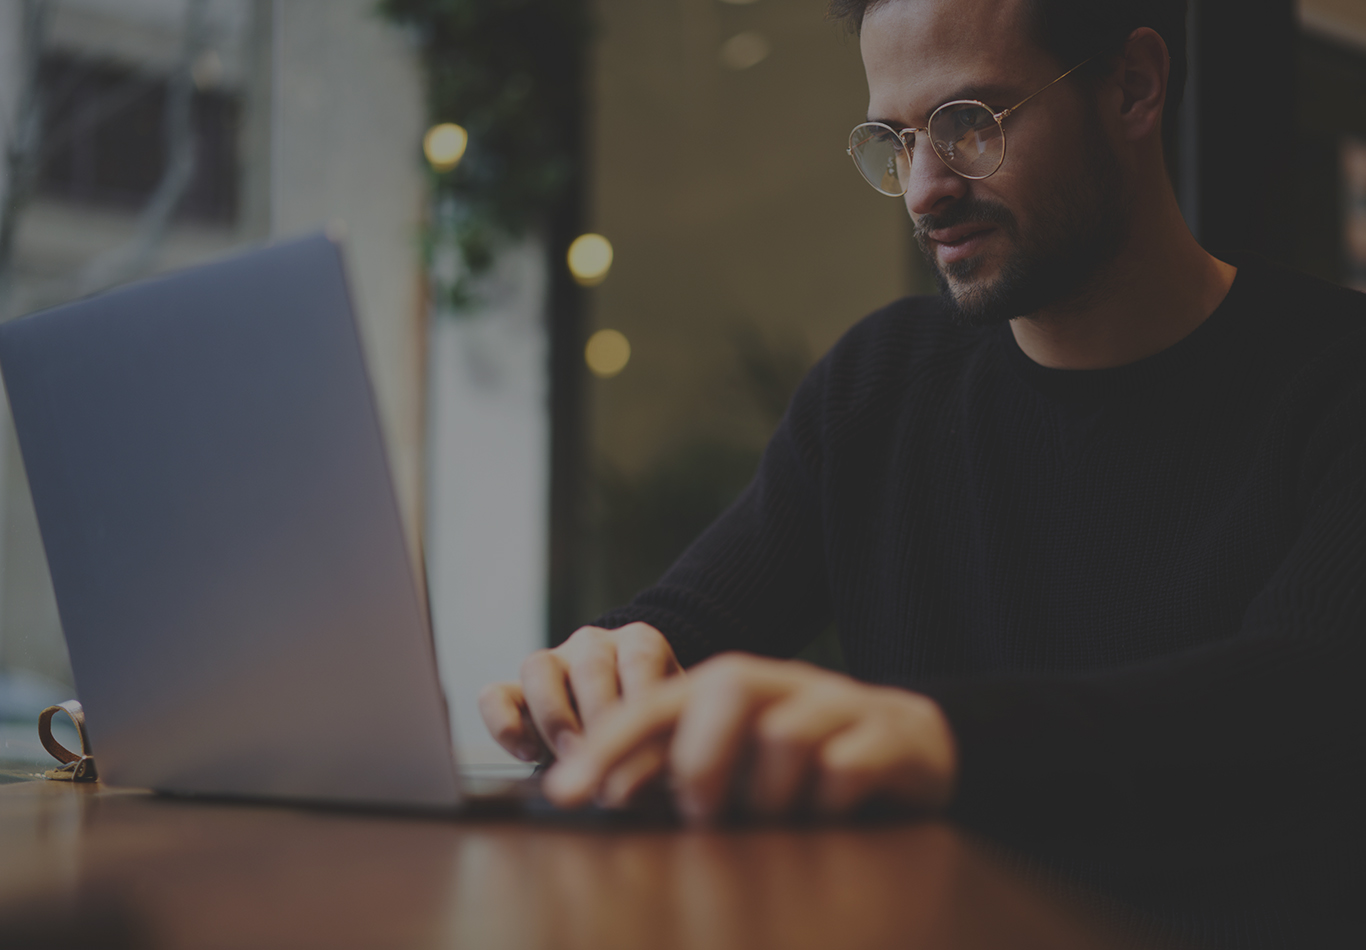 A bearded man wearing circular glasses is working on a laptop